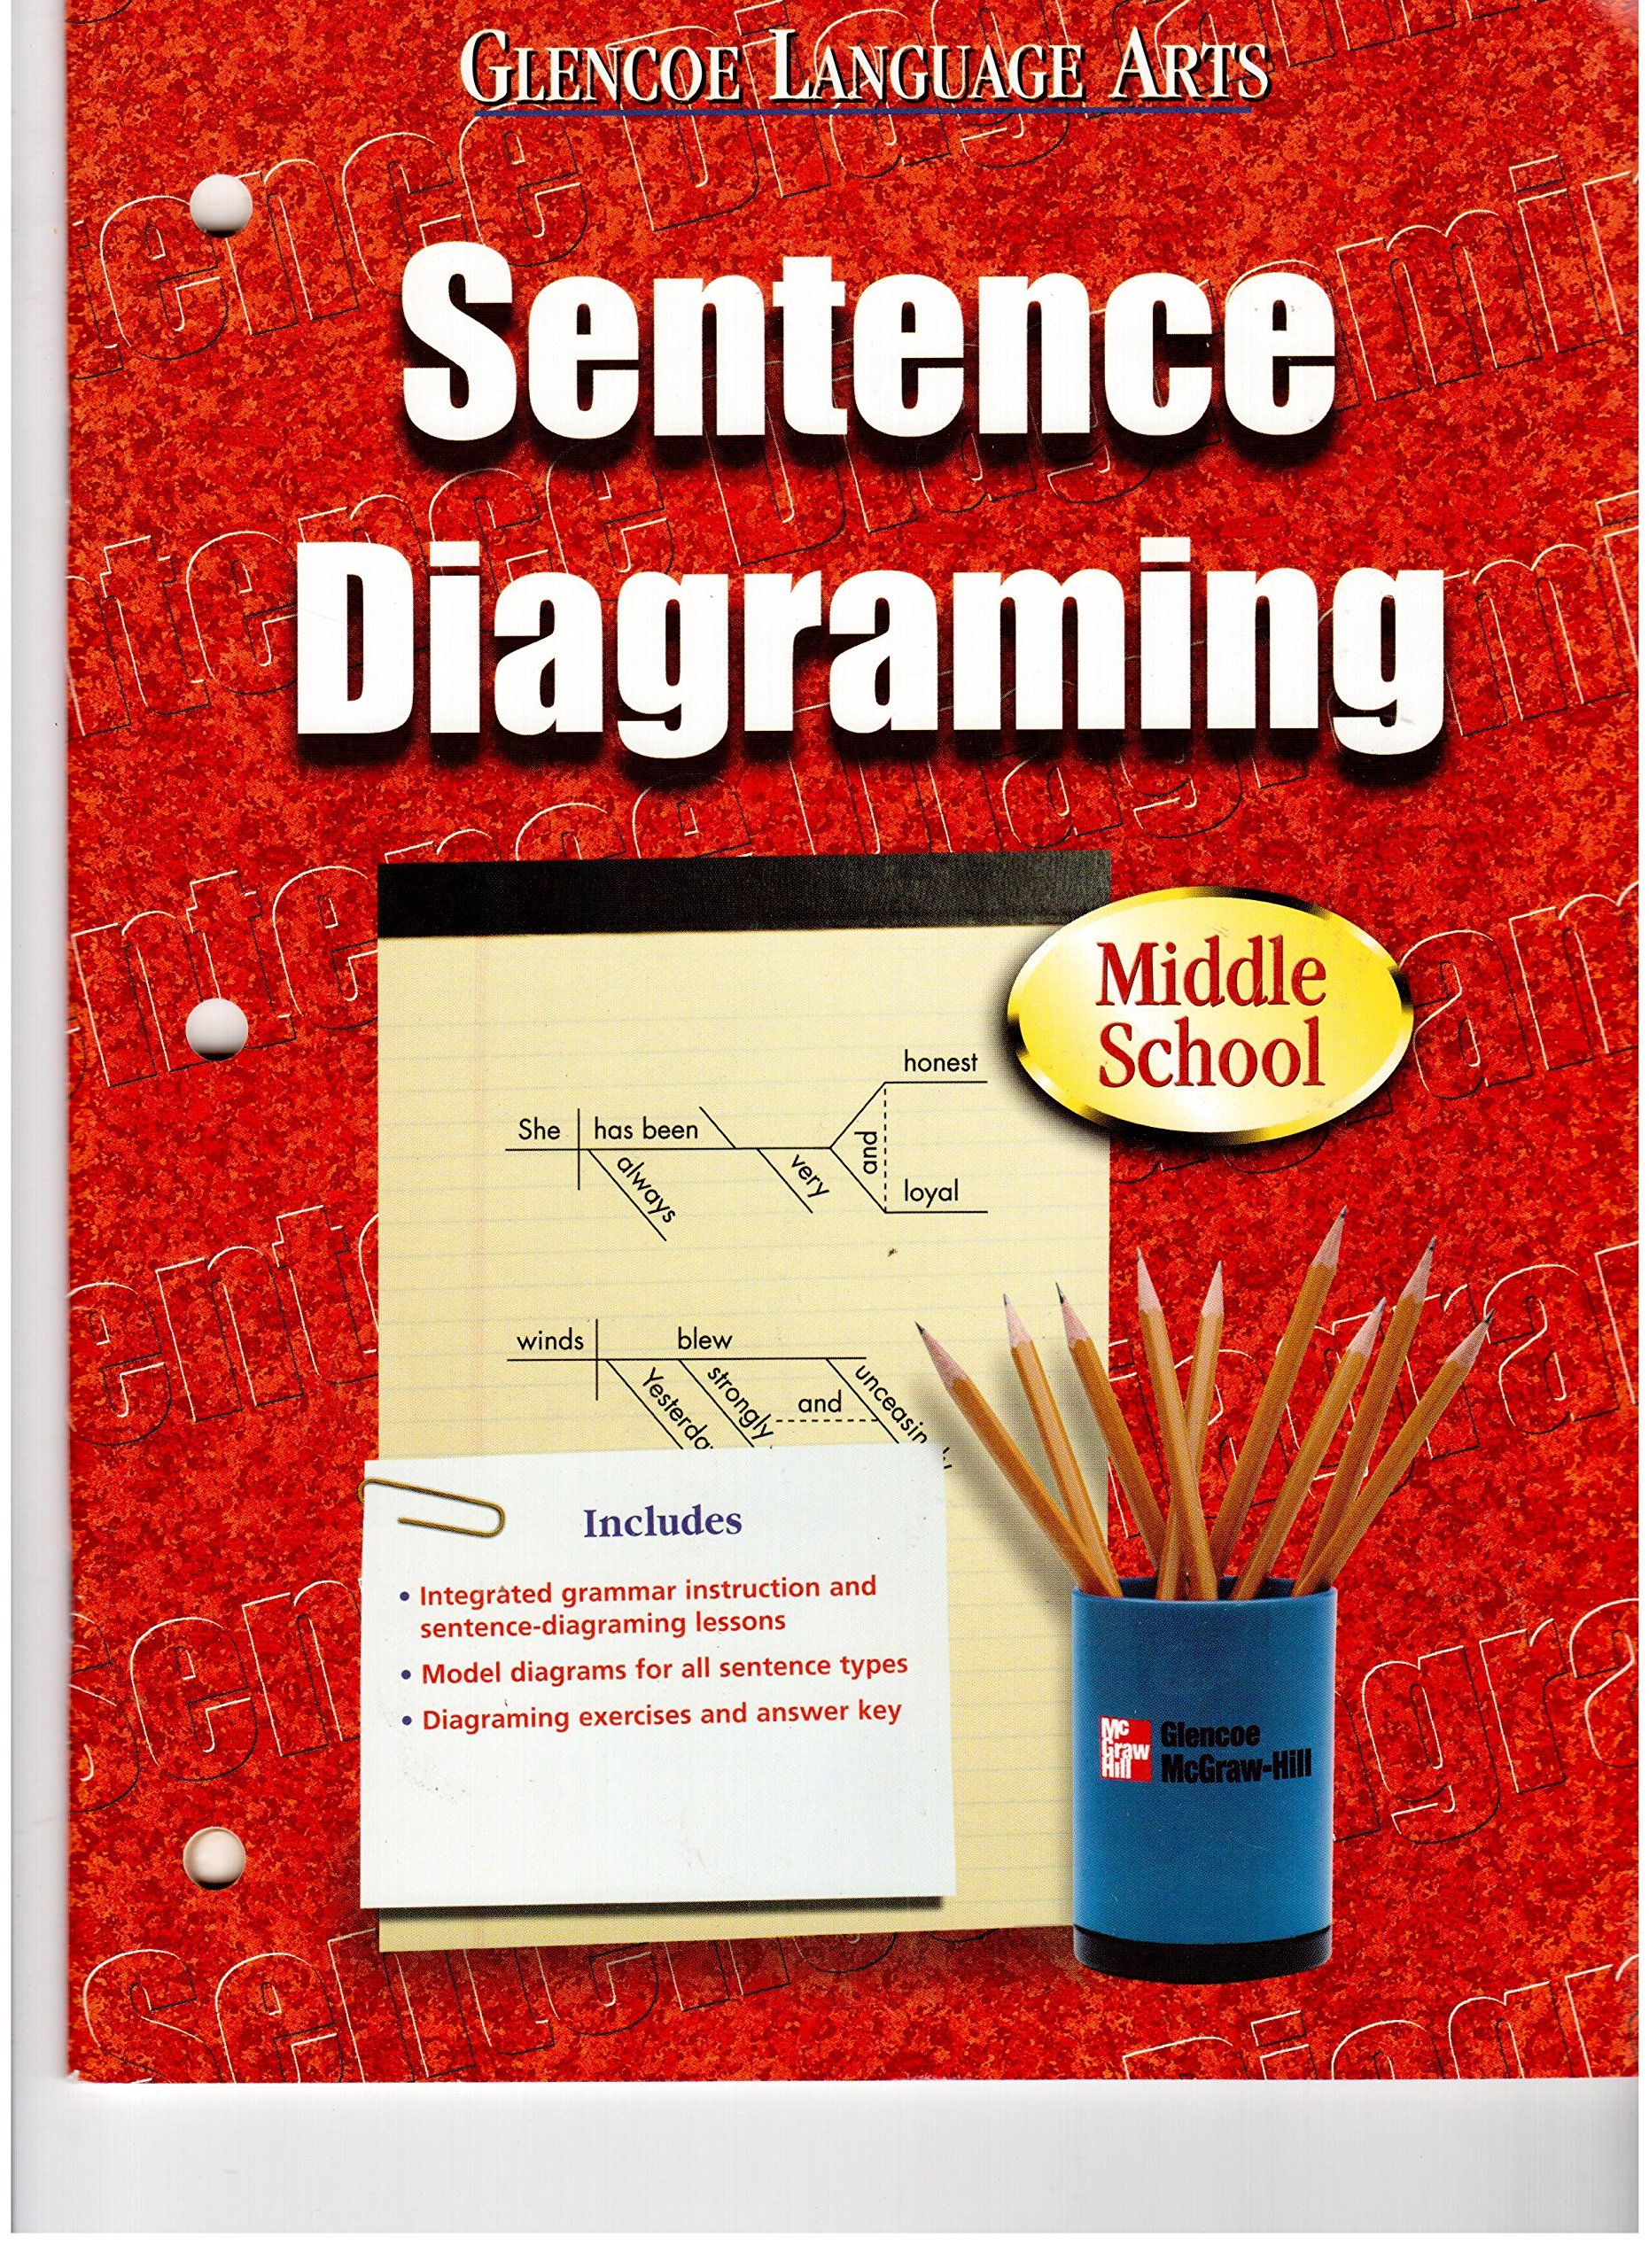 Glencoe language arts grades 6 8 sentence diagraming blackline glencoe language arts grades 6 8 sentence diagraming blackline masters mcgraw hill 9780078247026 amazon books ccuart Choice Image